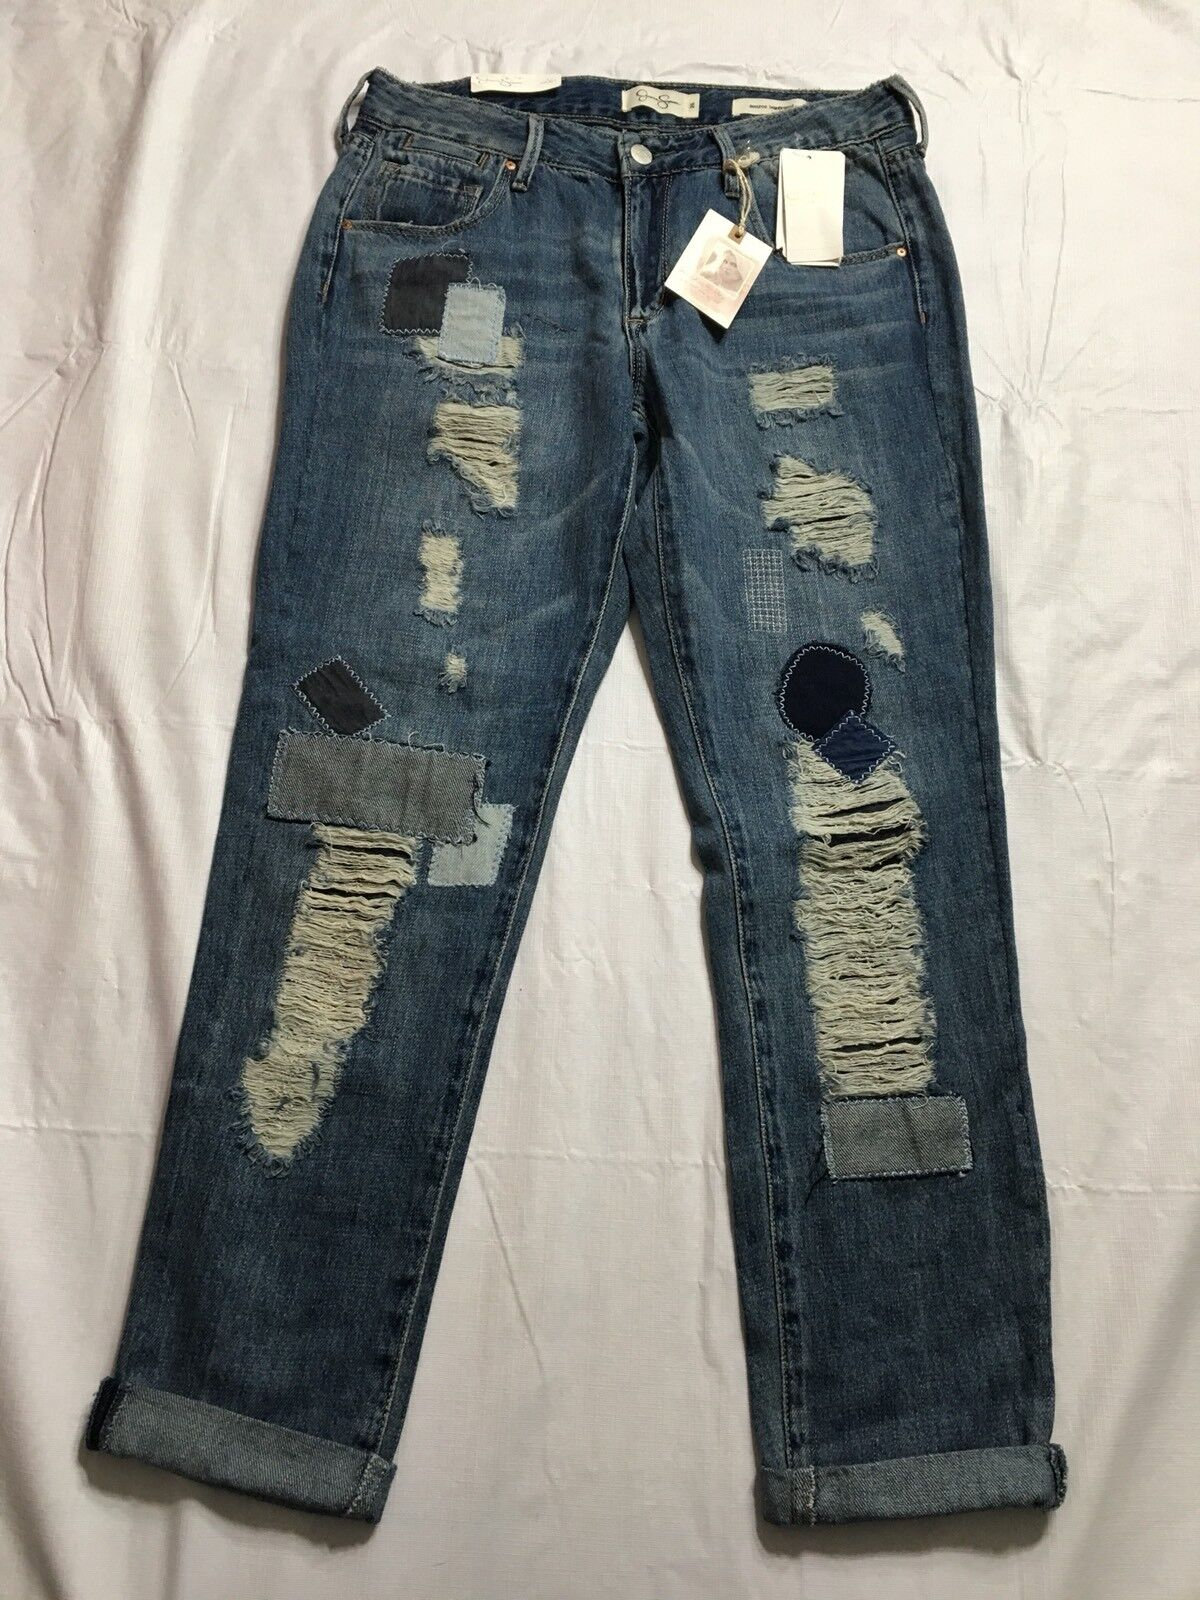 Jessica Simpson Monroe Boyfriend Jeans 26 Med Wash Distressed  Patchwork